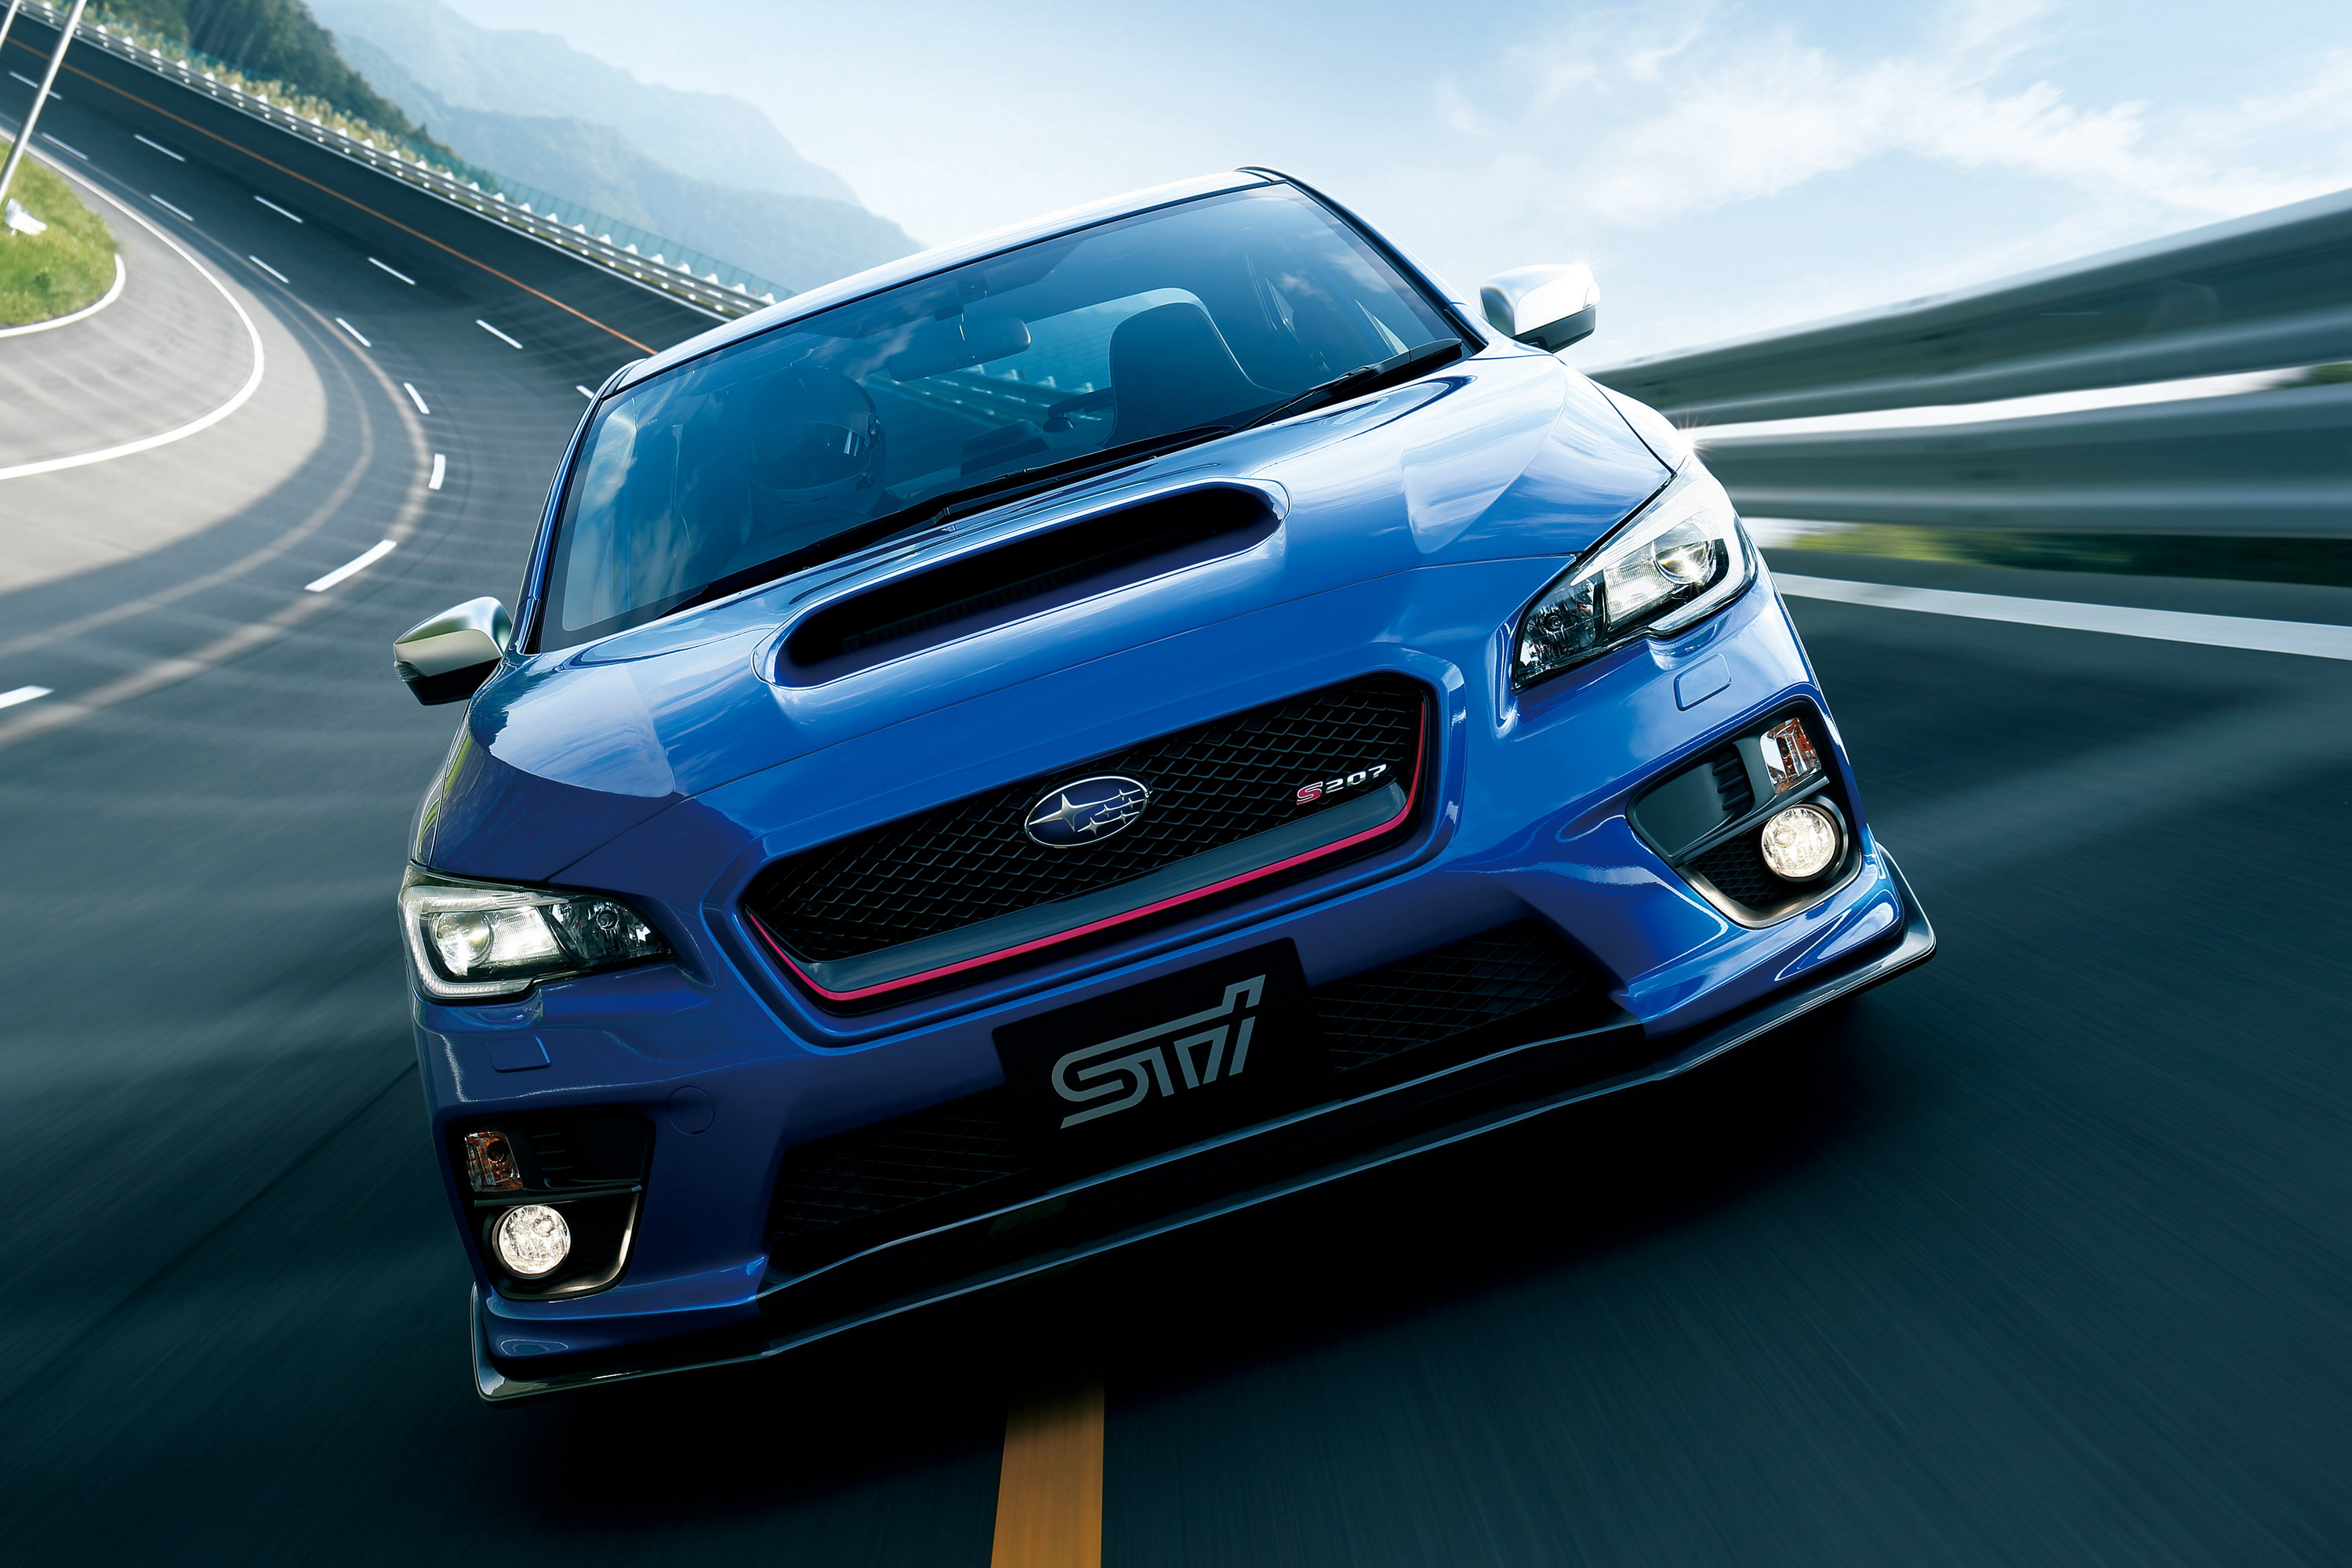 2016 subaru wrx sti s207 limited edition review - top speed